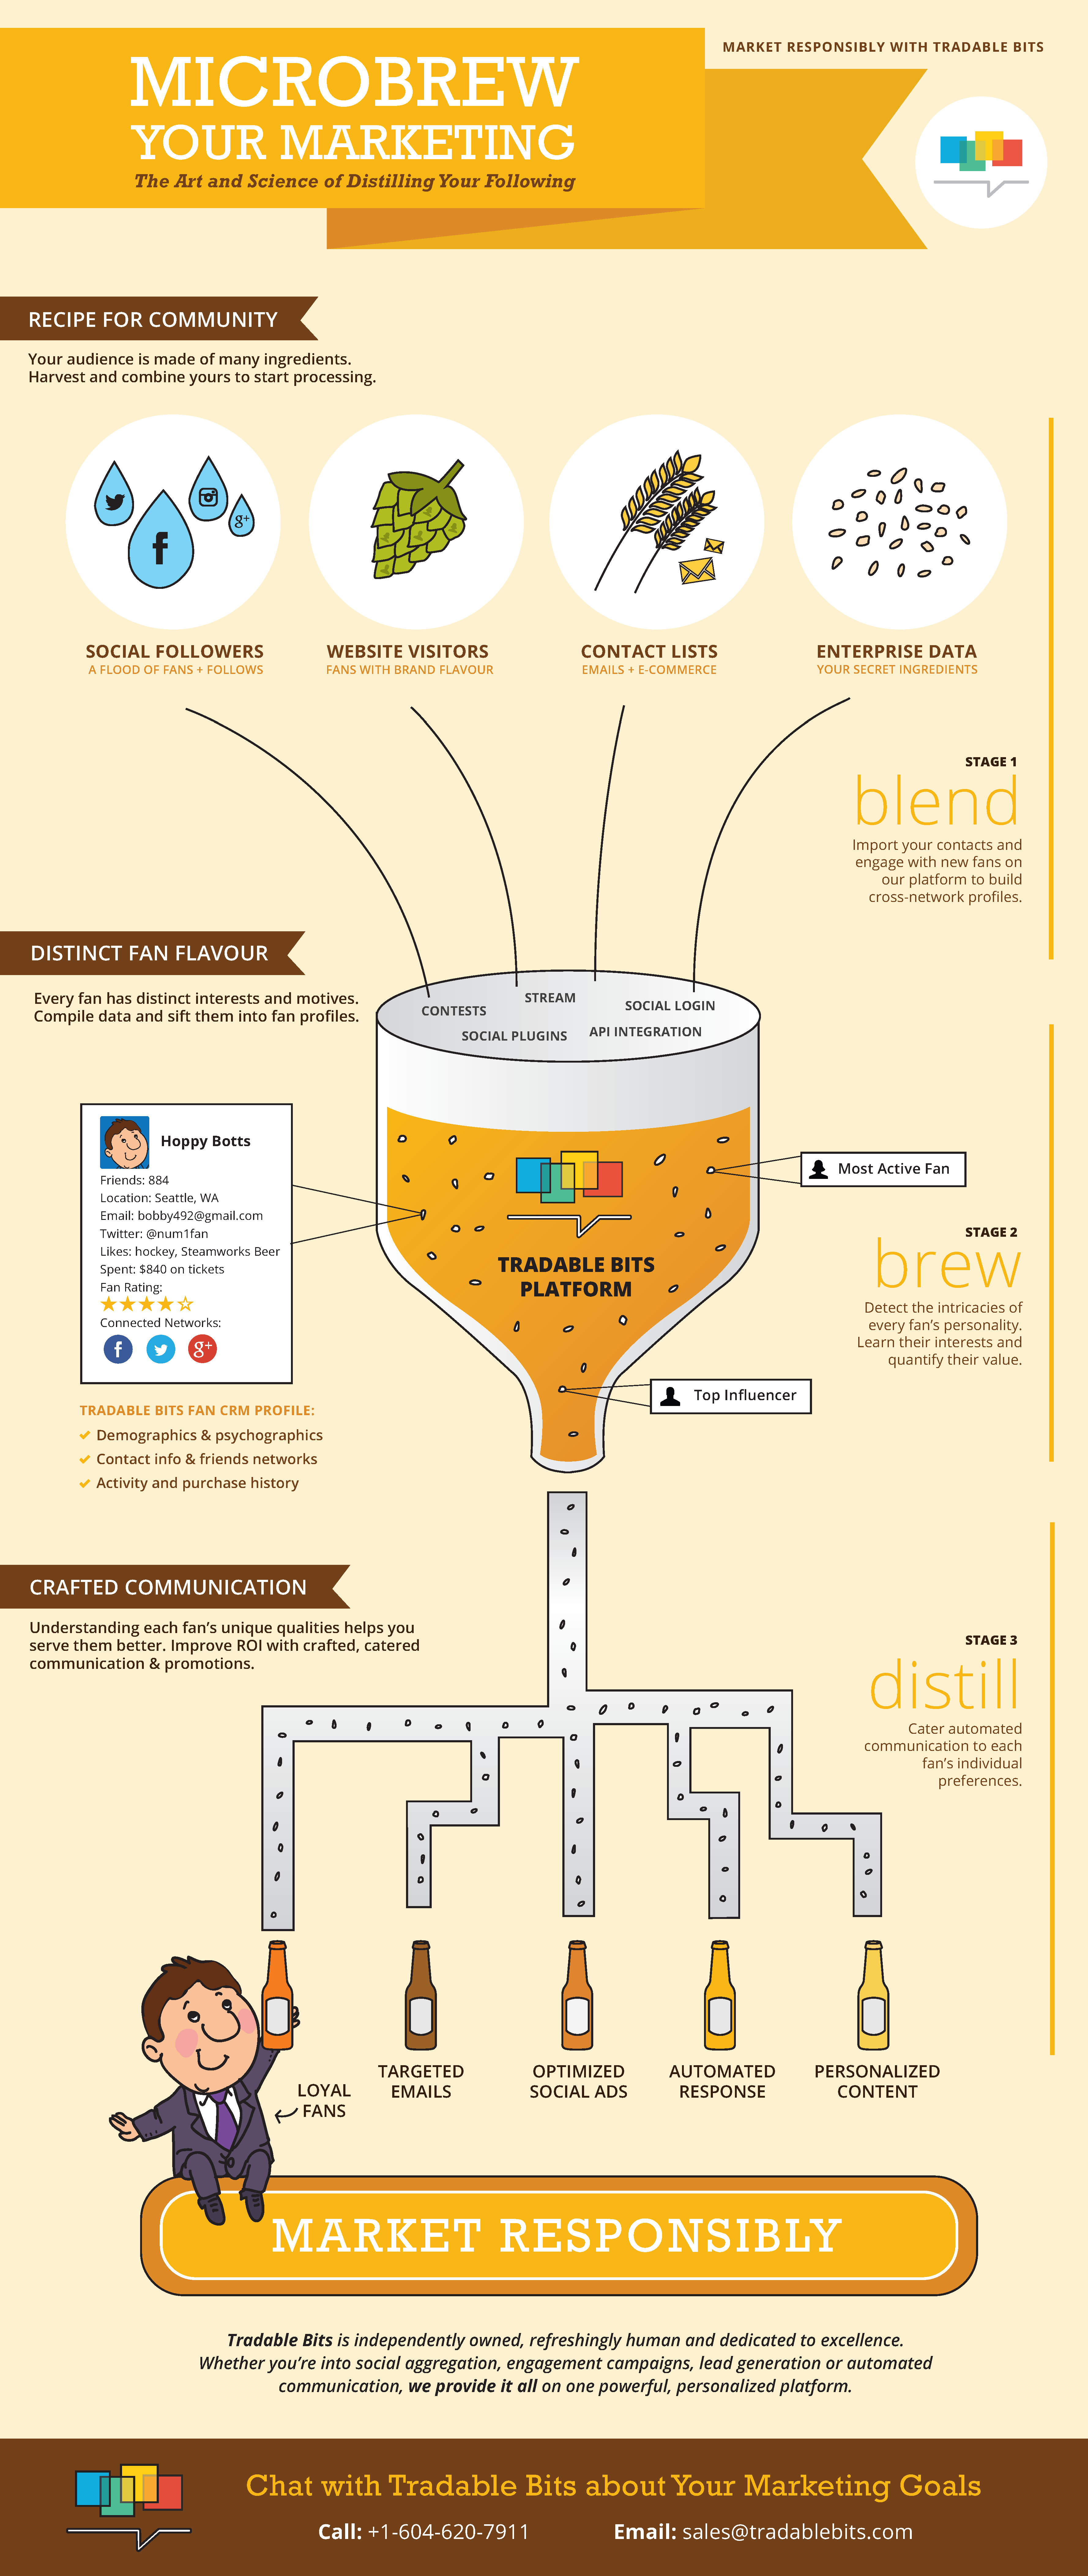 microbrew-your-marketing-infographic-tradable-bits